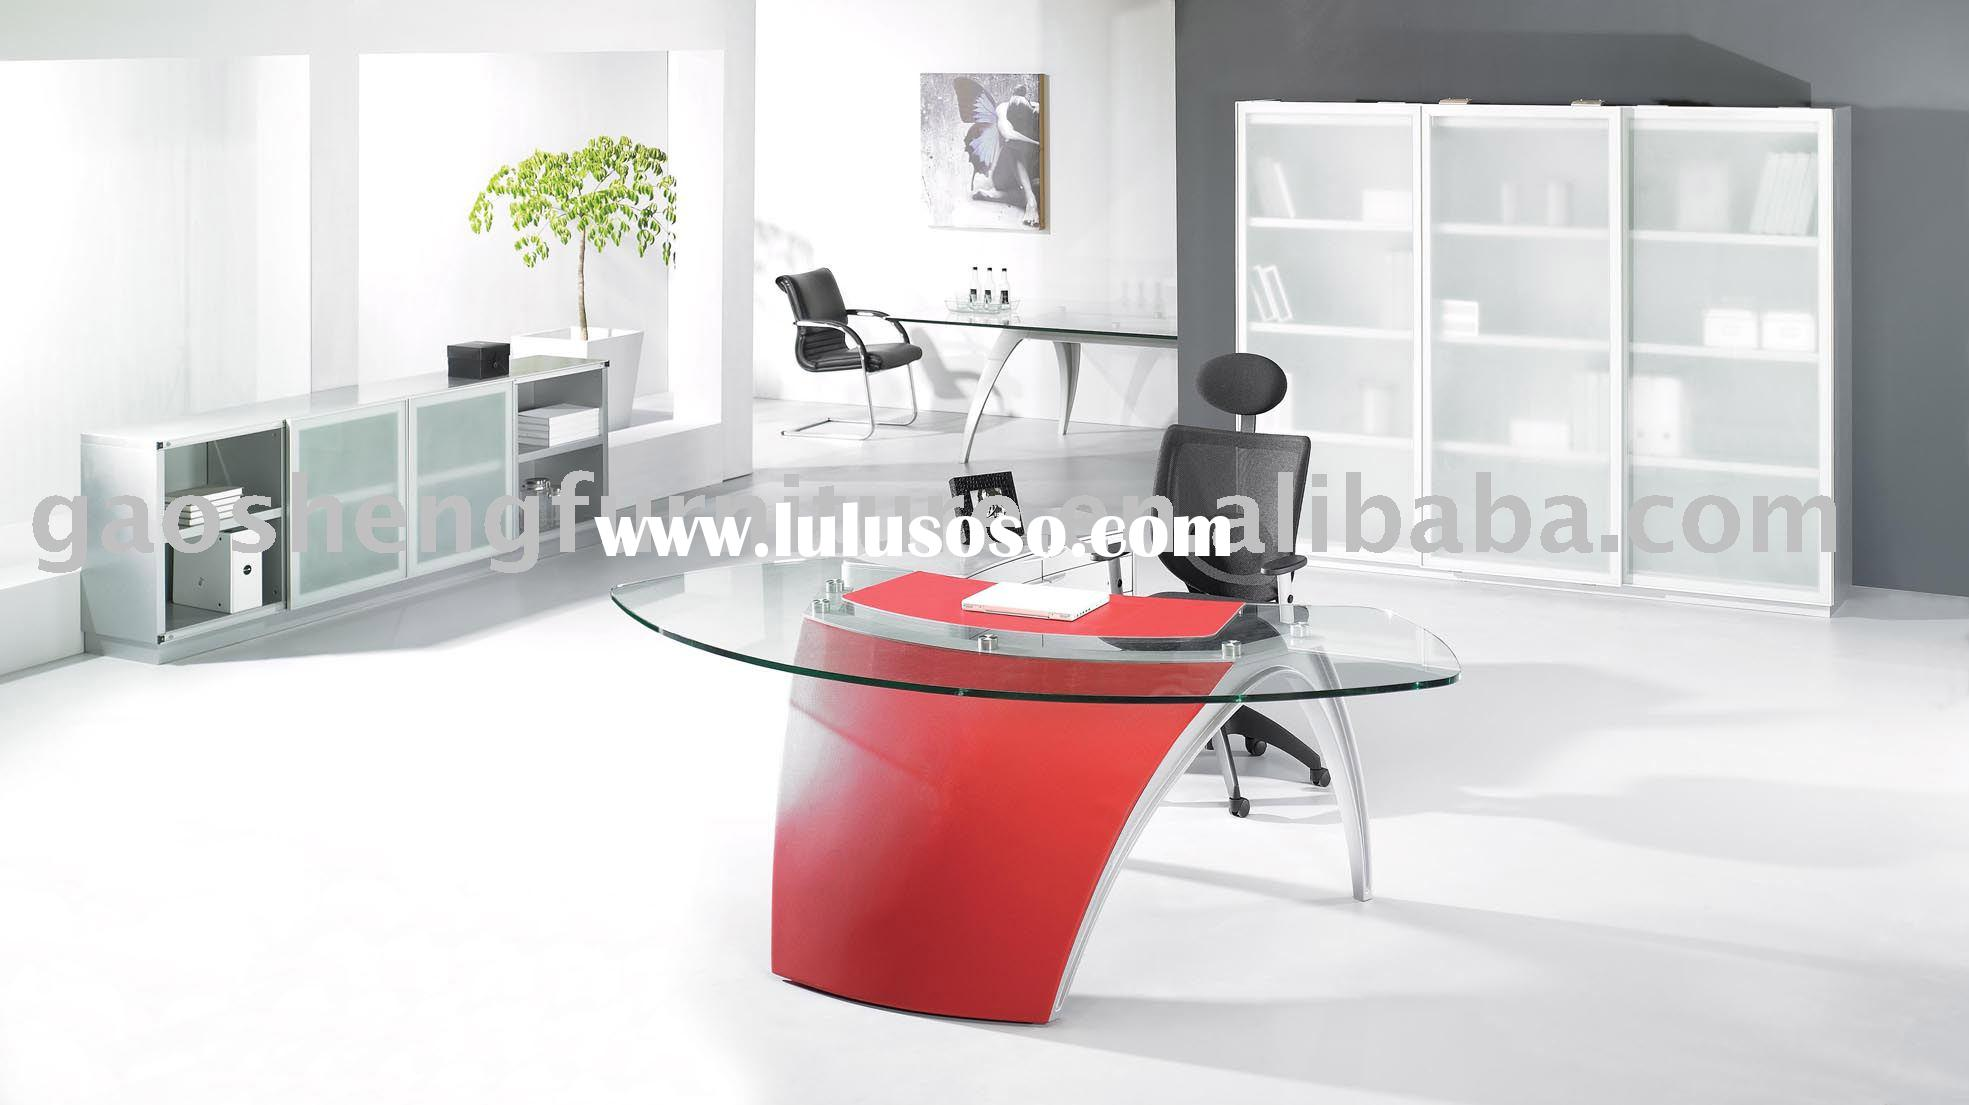 Office Furniture Office Desk Glass Desk Office Table GS-TJ018A1